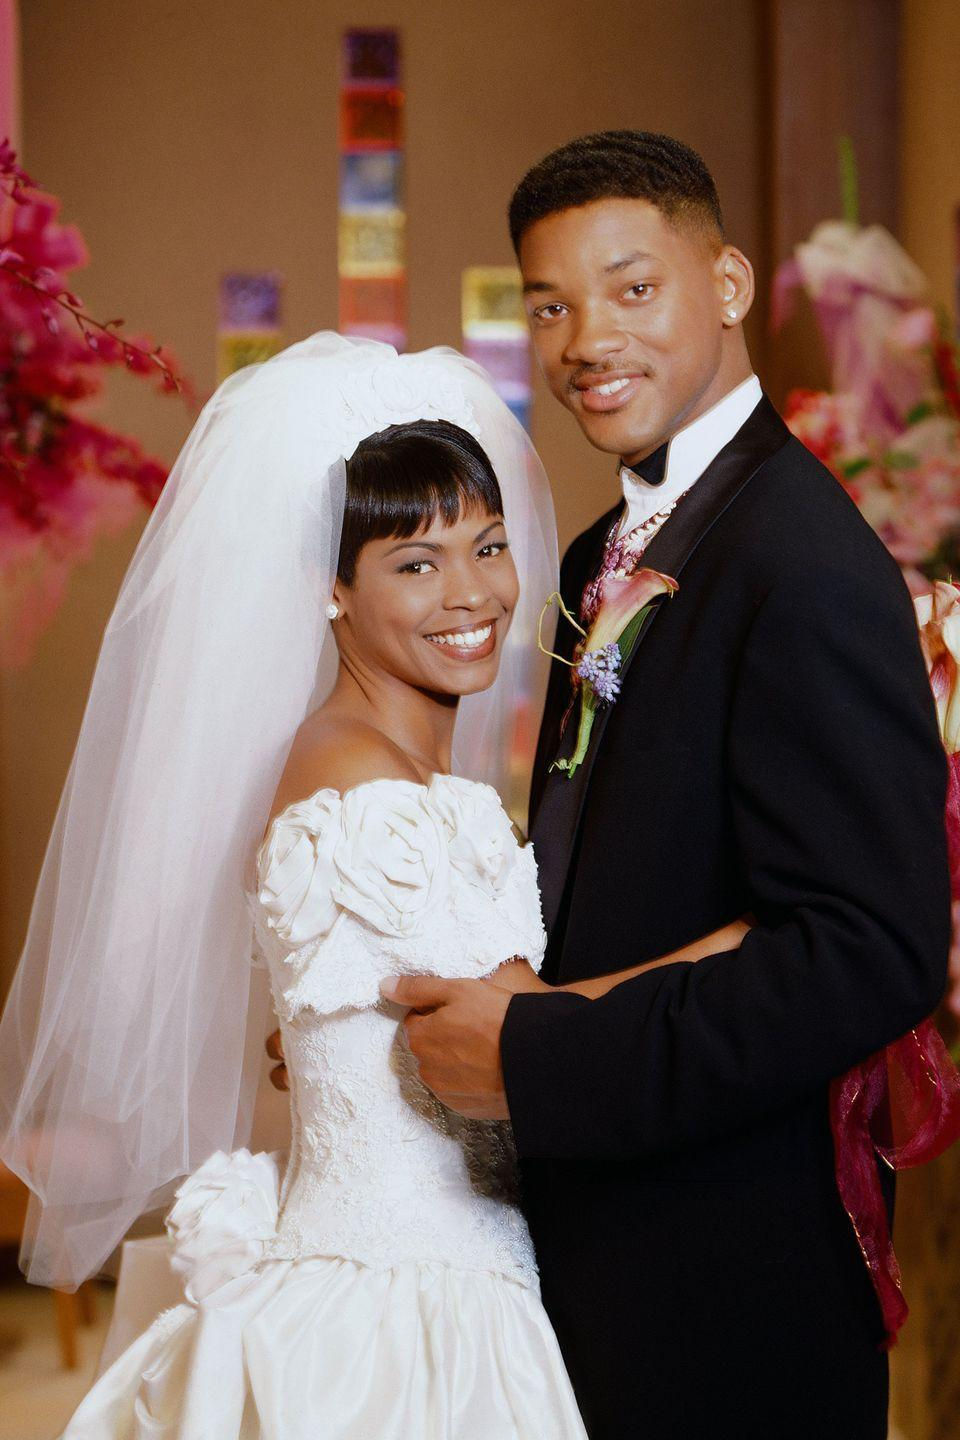 <p>The Fresh Prince was set to abandon his womanizing ways by nearly marrying Lisa in season 5, although the wedding never happened. Although the couple agreed to call it quits, Lisa still looked gorgeous in an off-the-shoulder wedding dress with textured fabric and floral details. </p>